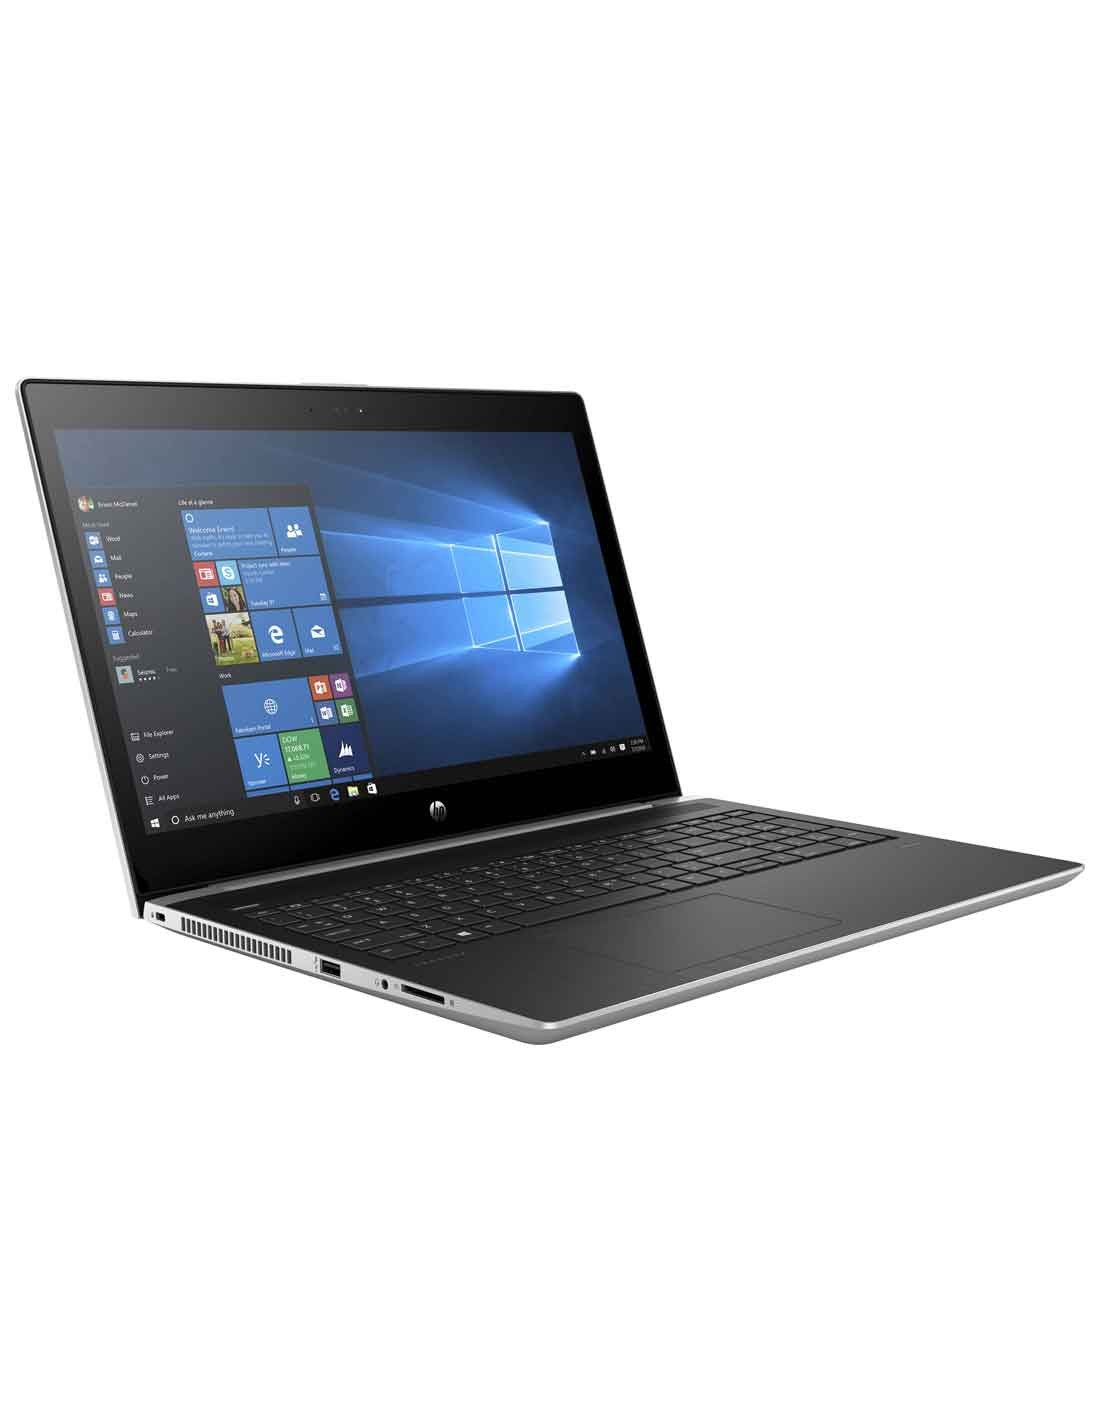 HP ProBook 450 G5 Notebook images